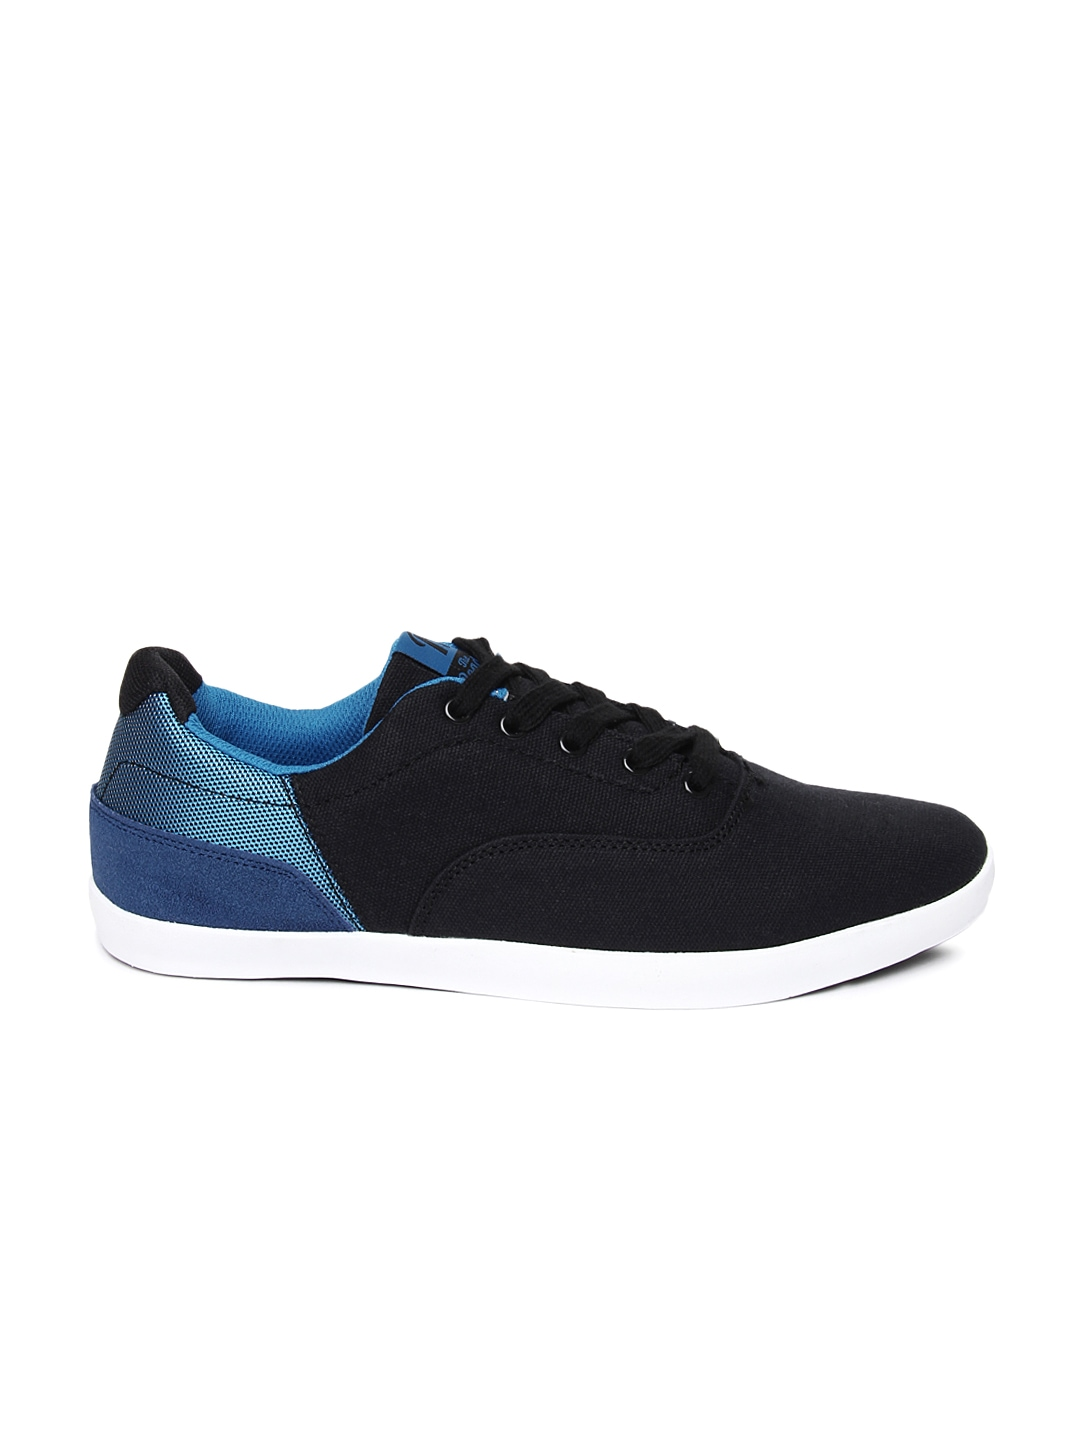 myntra roadster black blue casual shoes 678646 buy